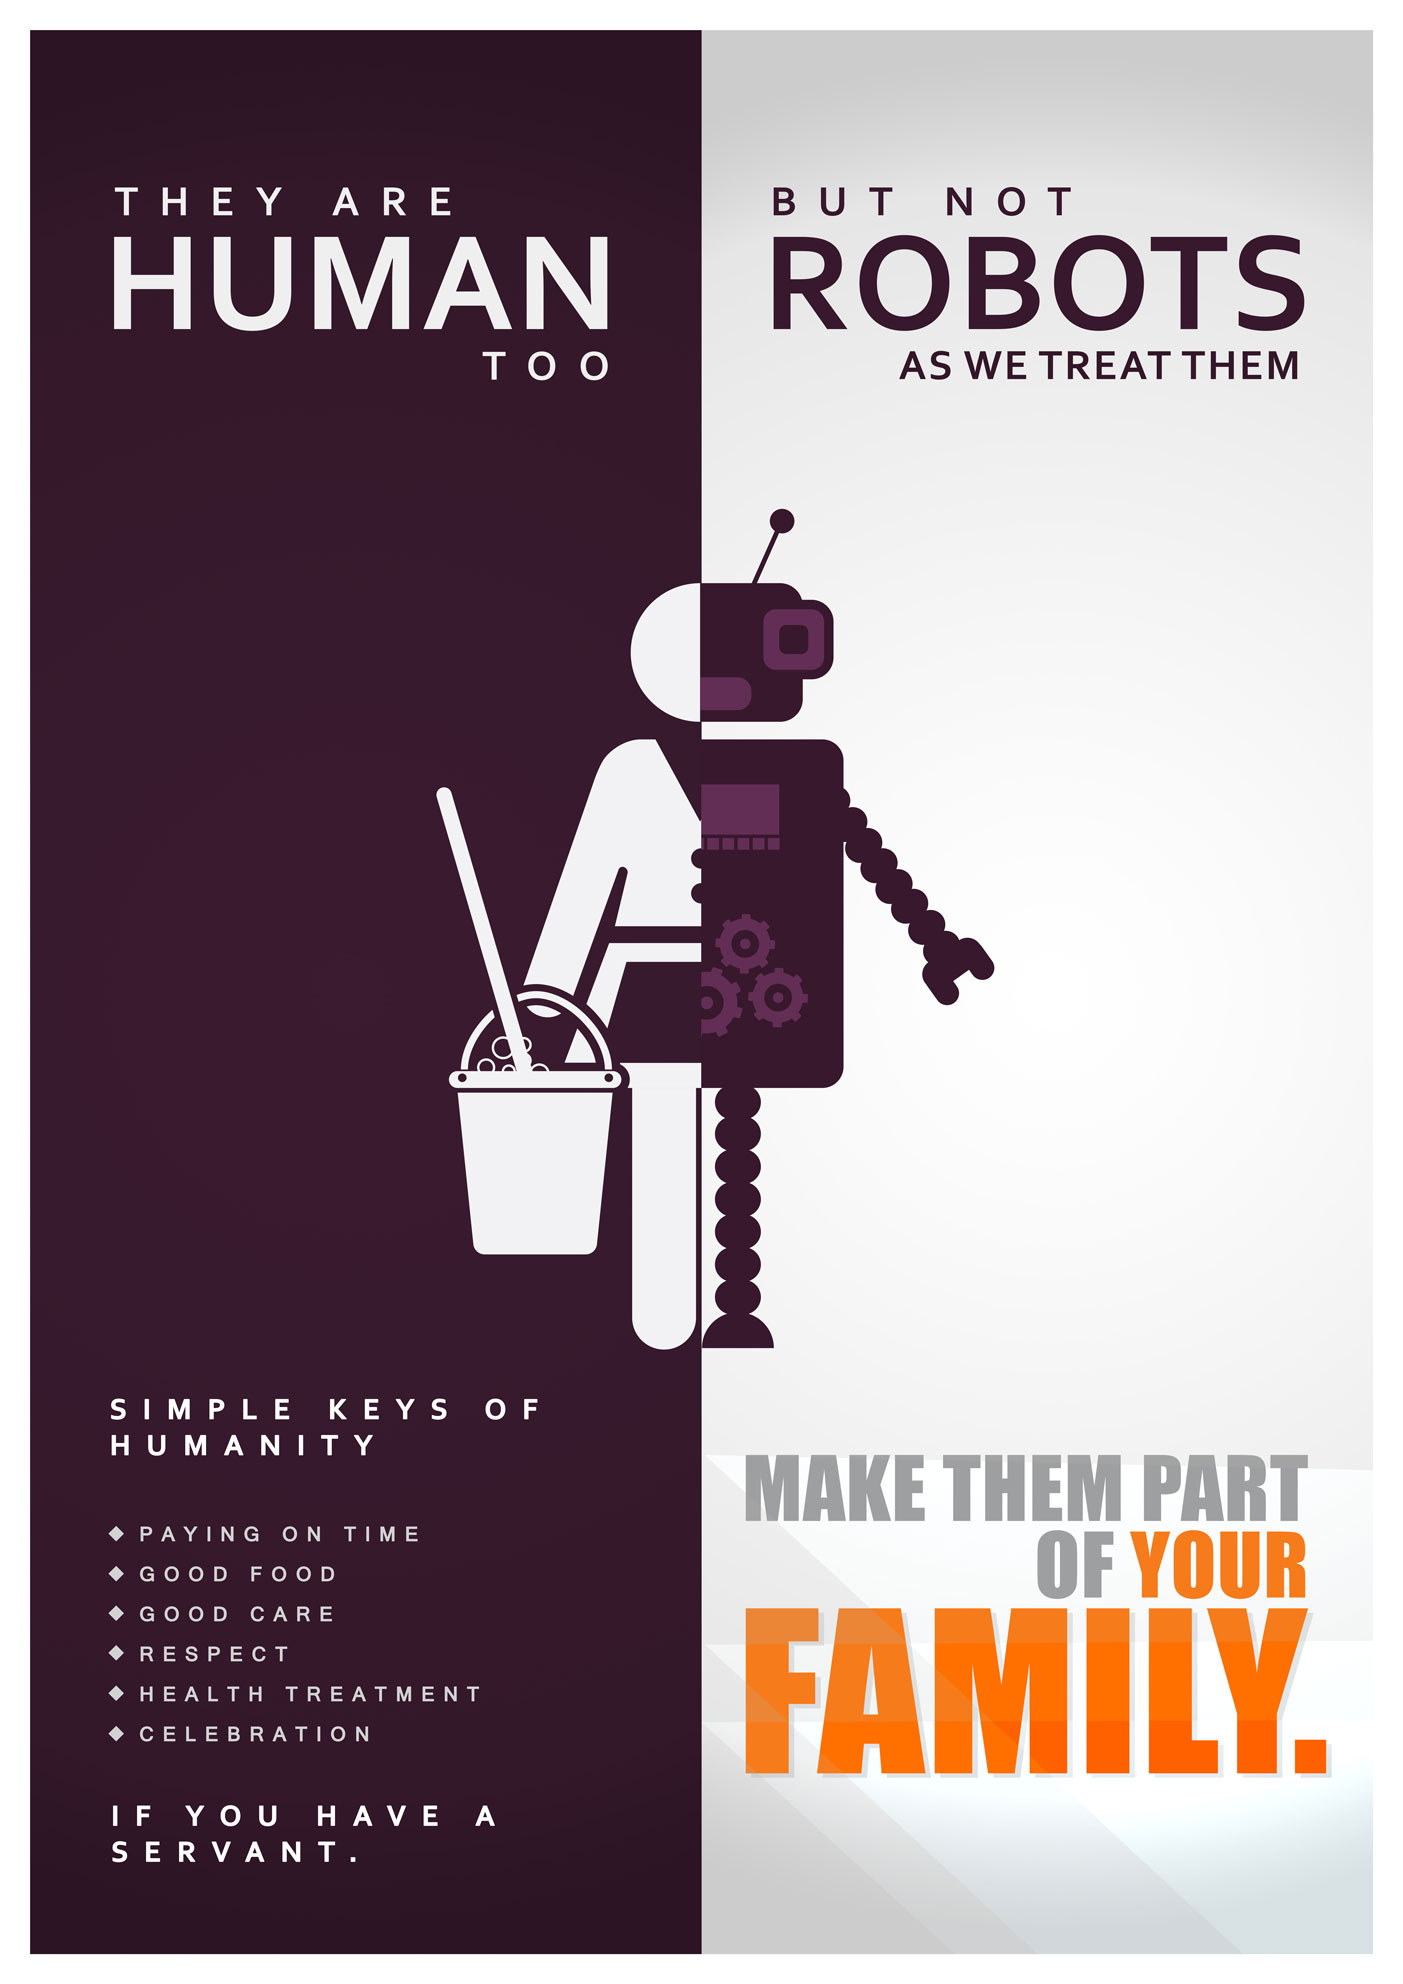 Human but not robot